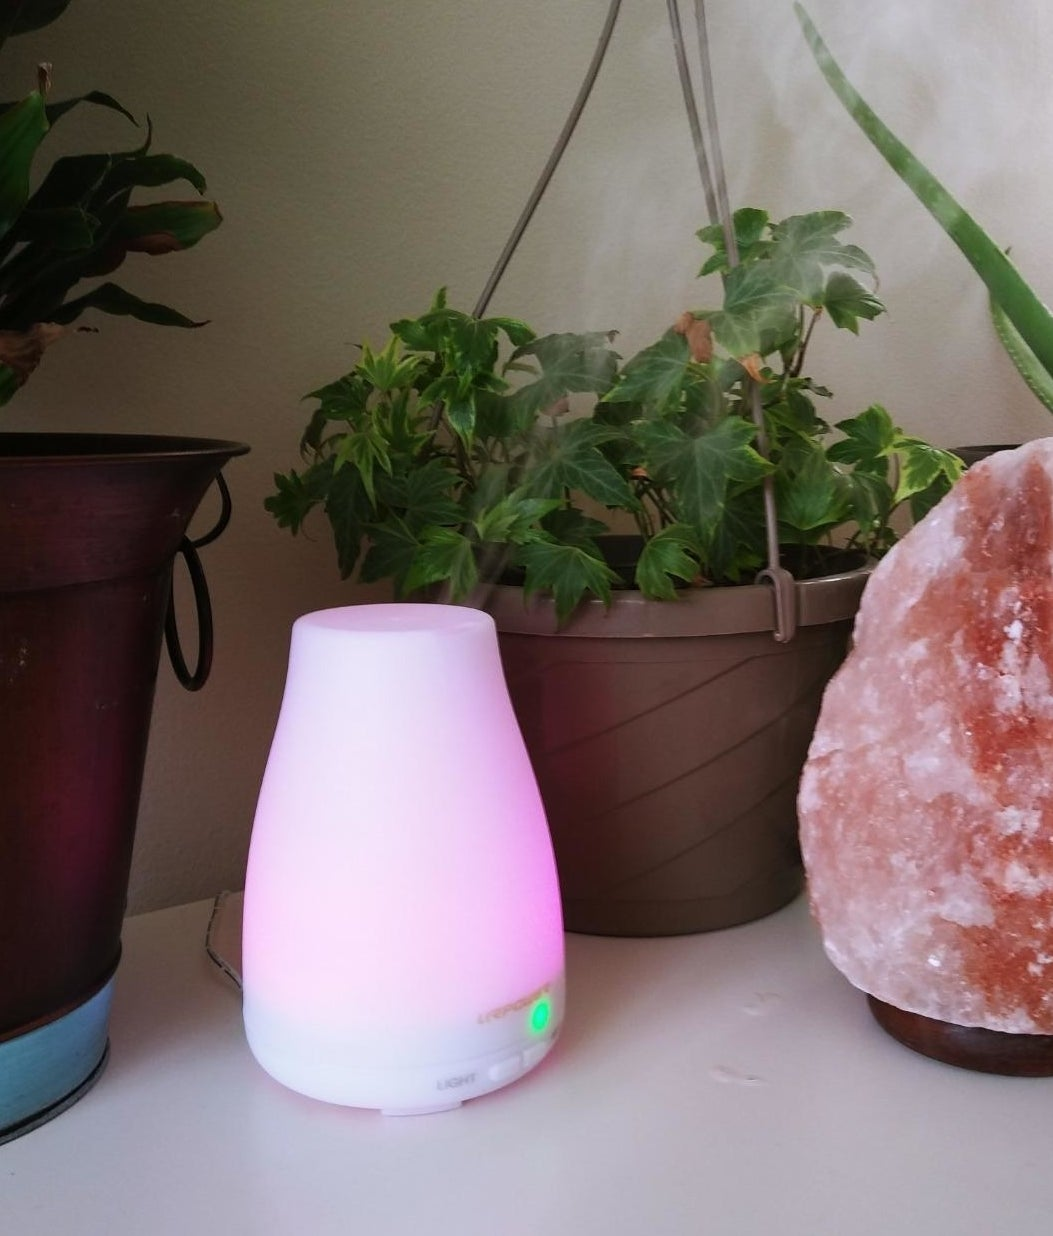 Reviewer pic of a small white diffuser lit up pink.